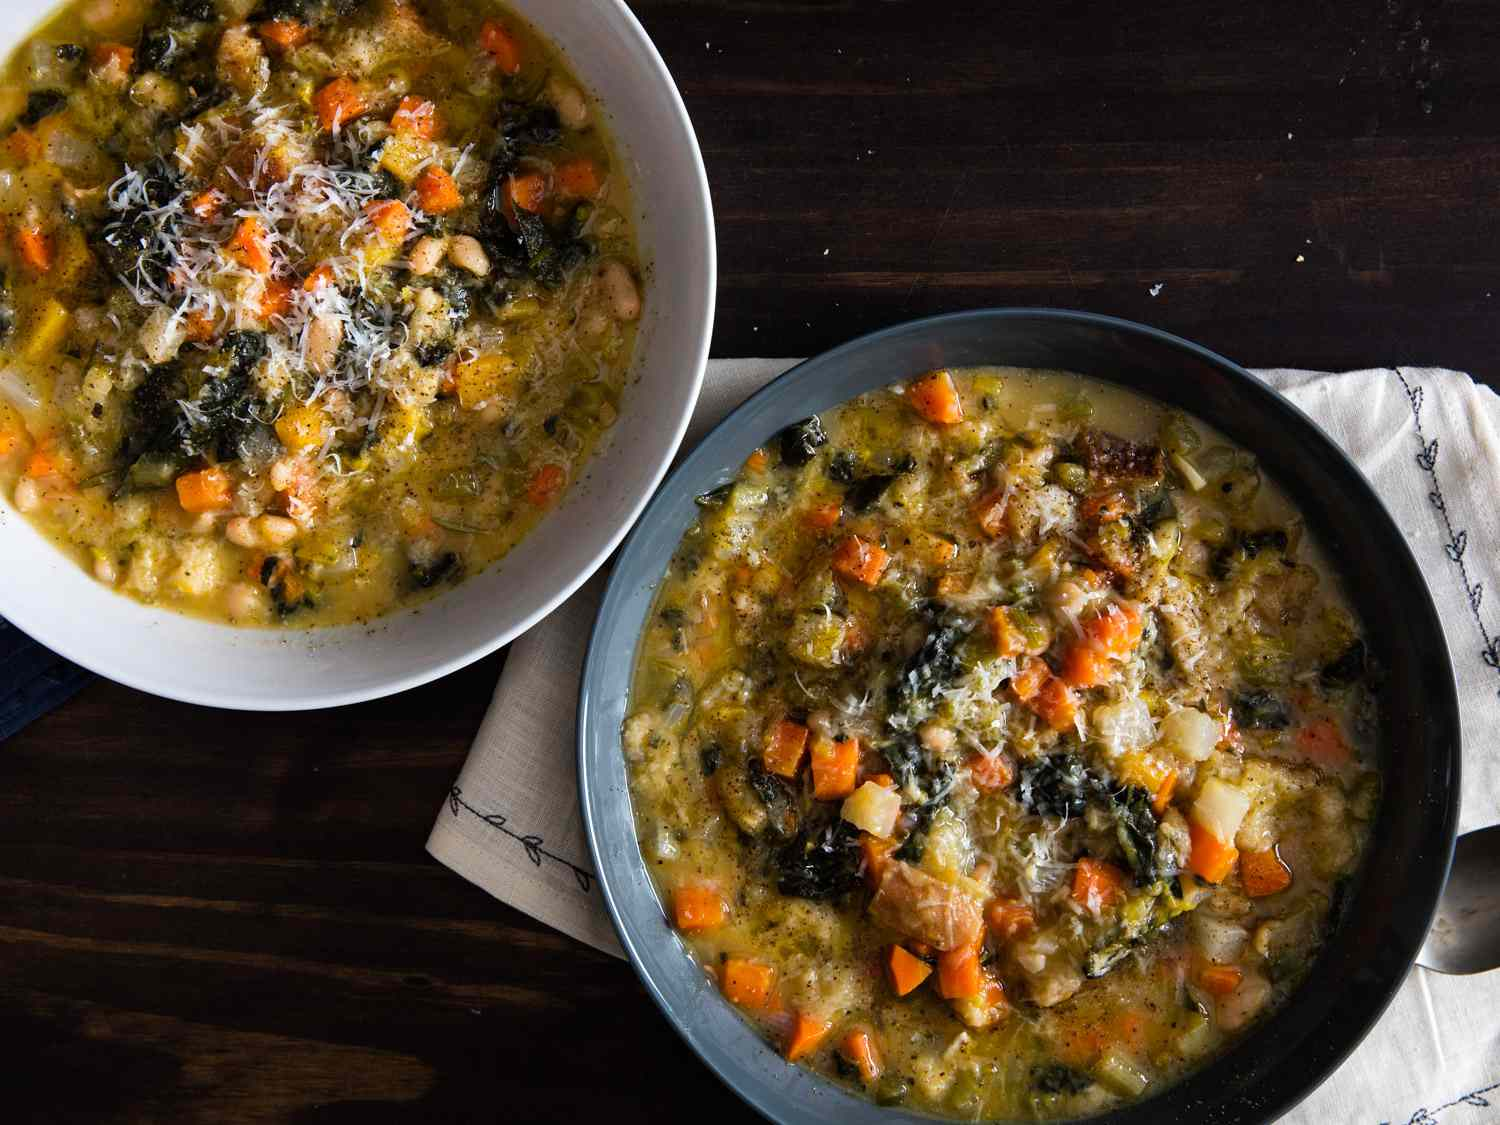 two bowls of Ribollita (Hearty Tuscan Bean, Bread, and Vegetable Stew) on a dark wood table.